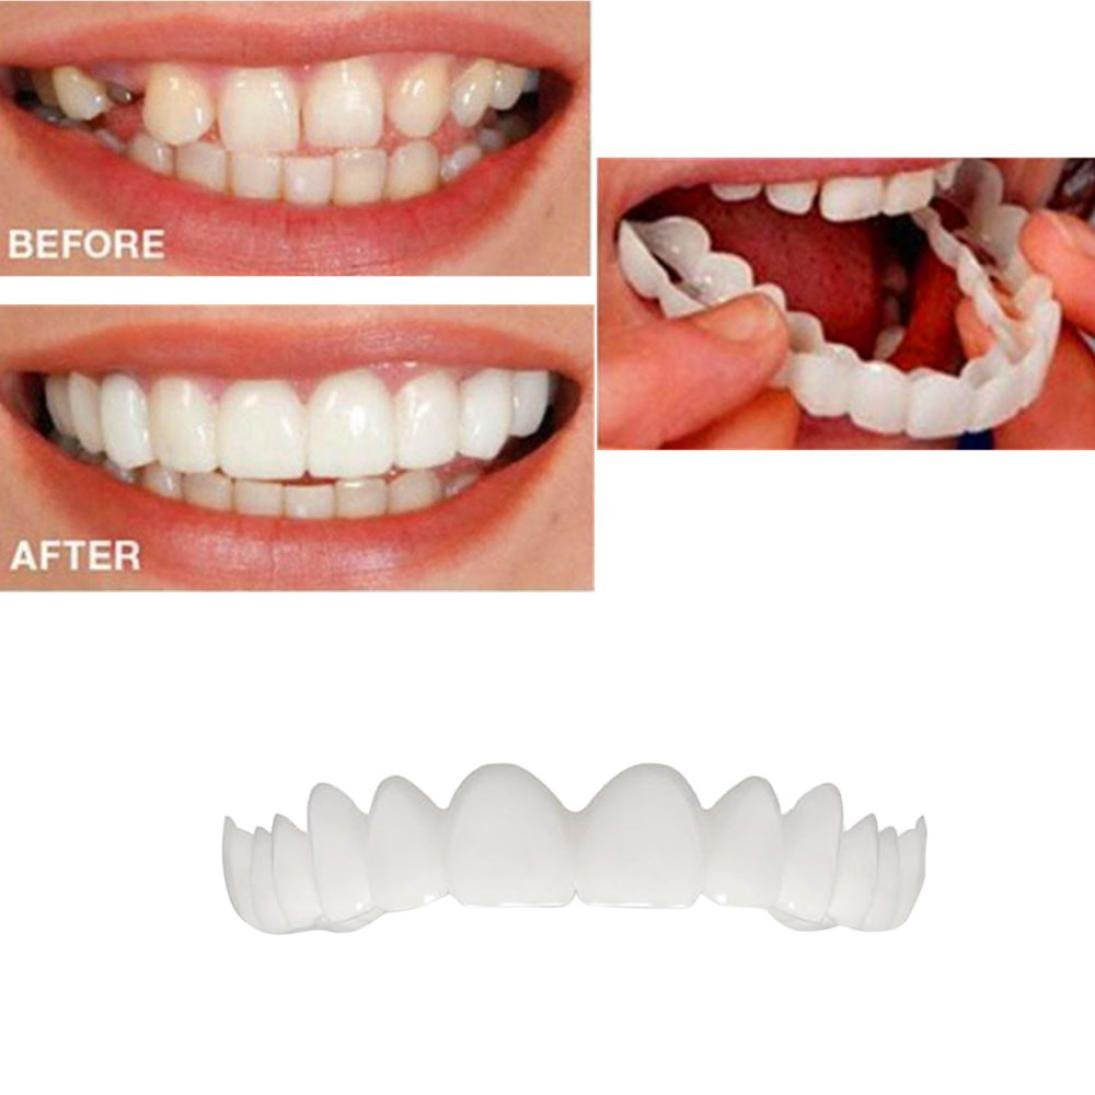 Prevently New Creative Professional Perfect Temporary Smile Comfort Fit Flex Cosmetic Teeth Denture Teeth Top Cosmetic Veneer Prevently Beauty